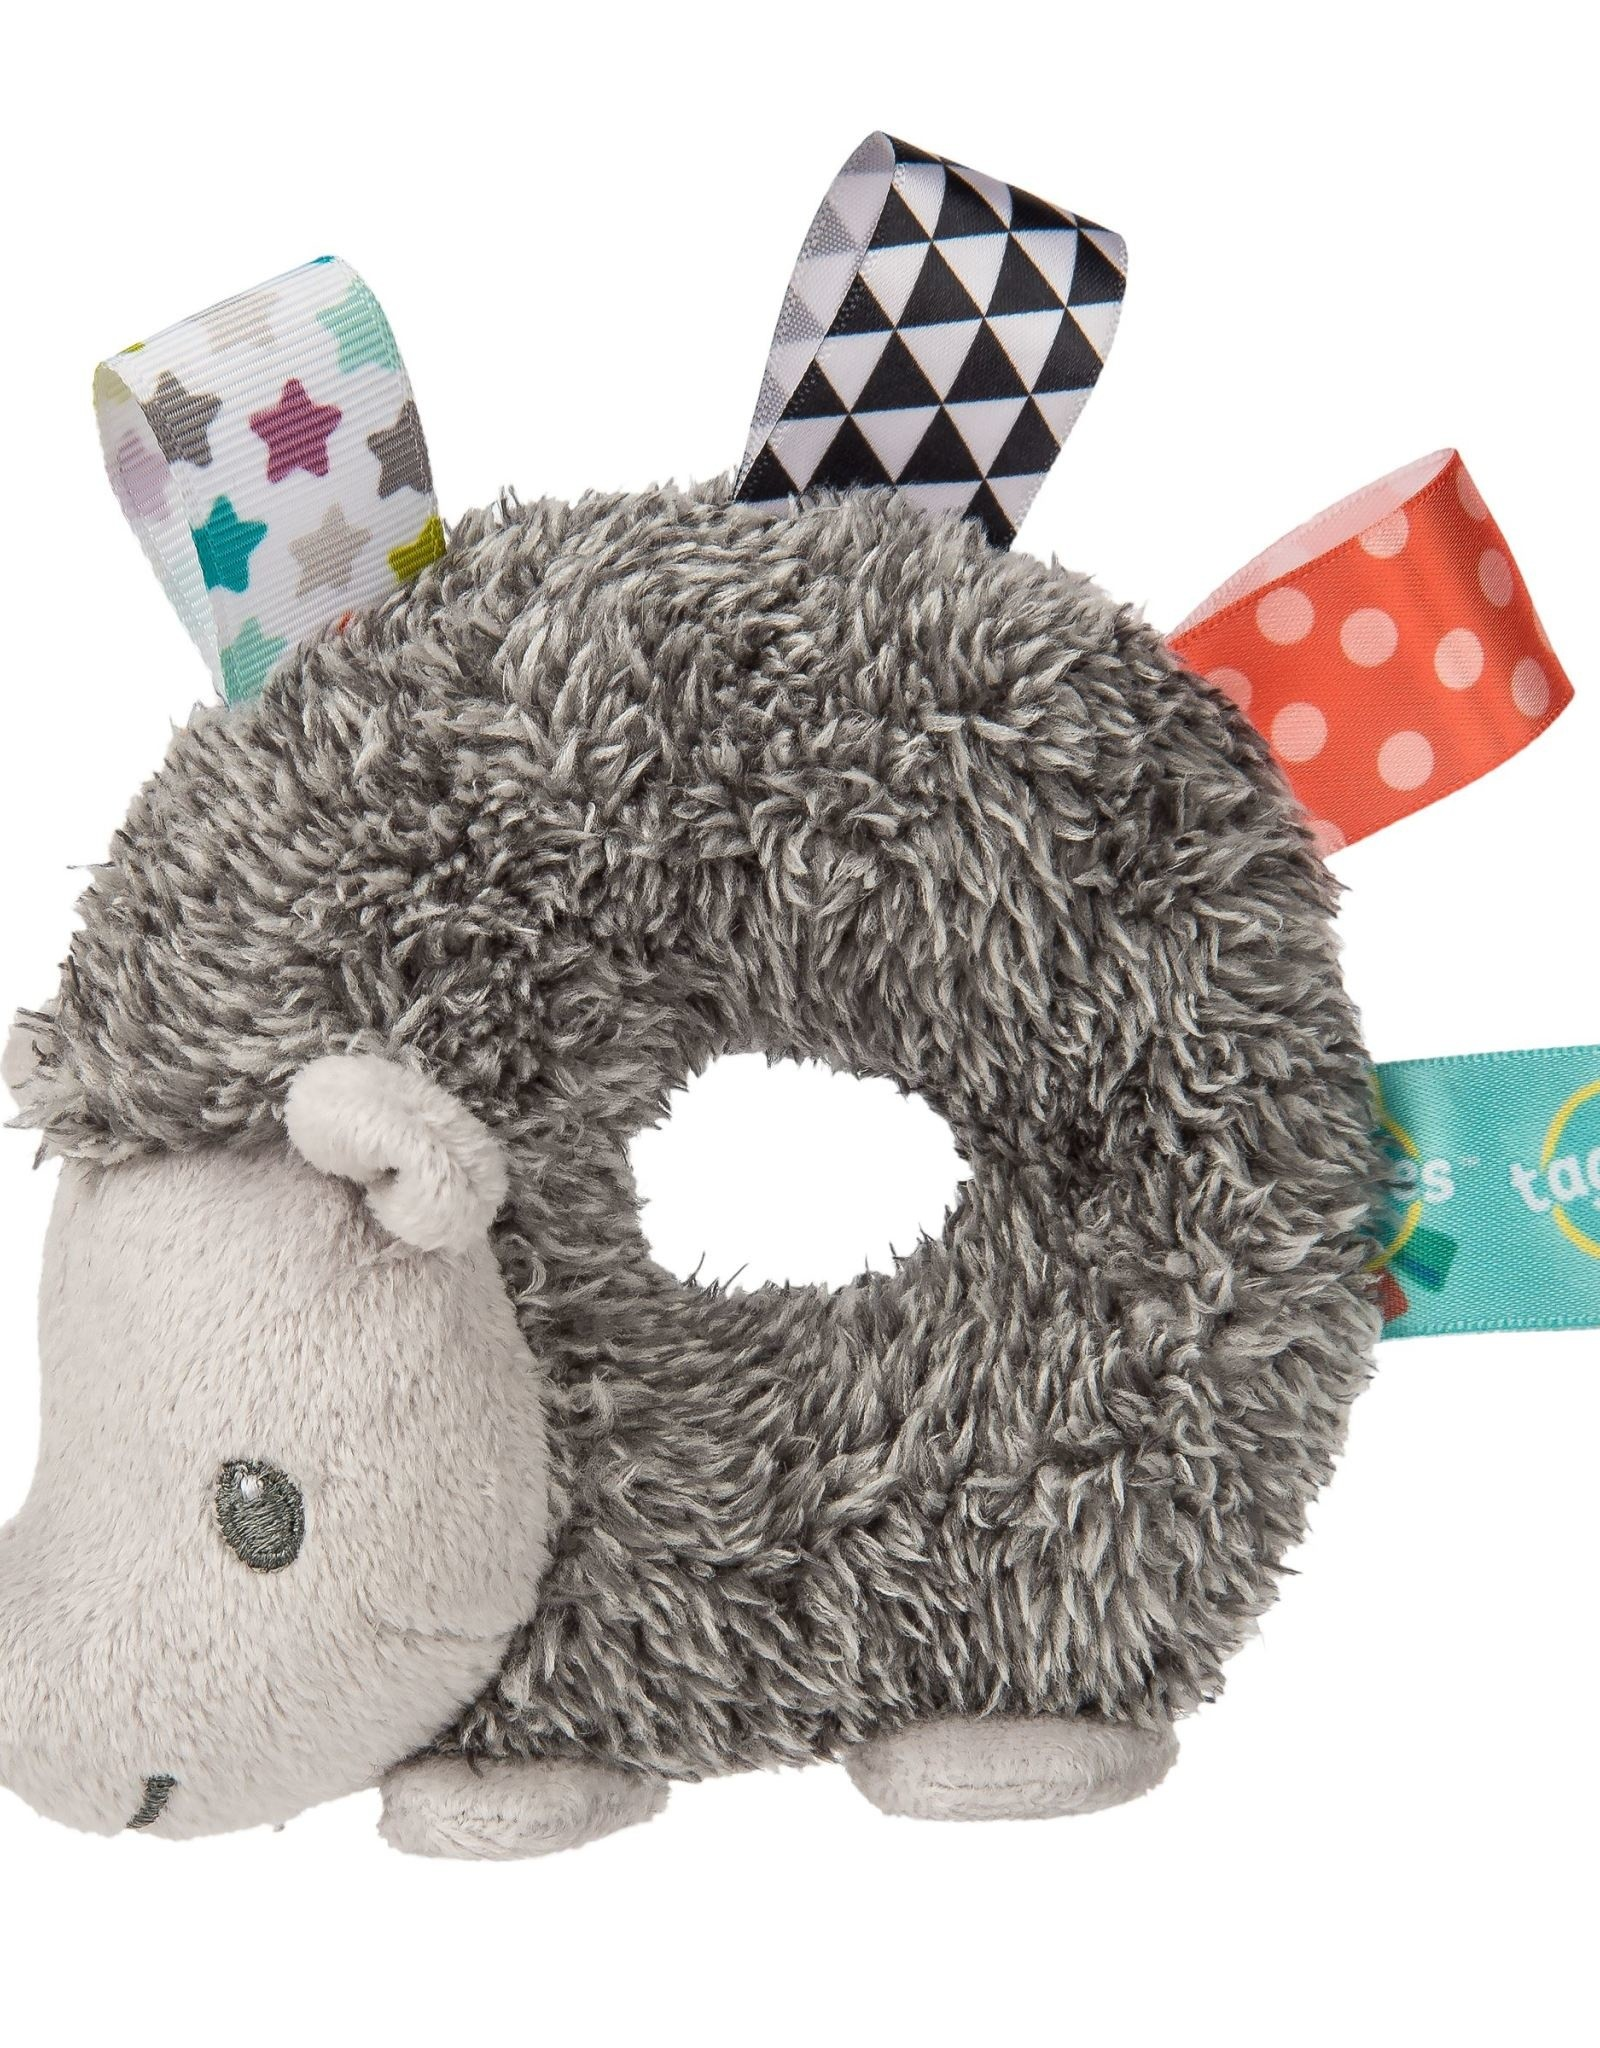 Mary Meyer Taggies Heather Hedgehog Rattle - 5""